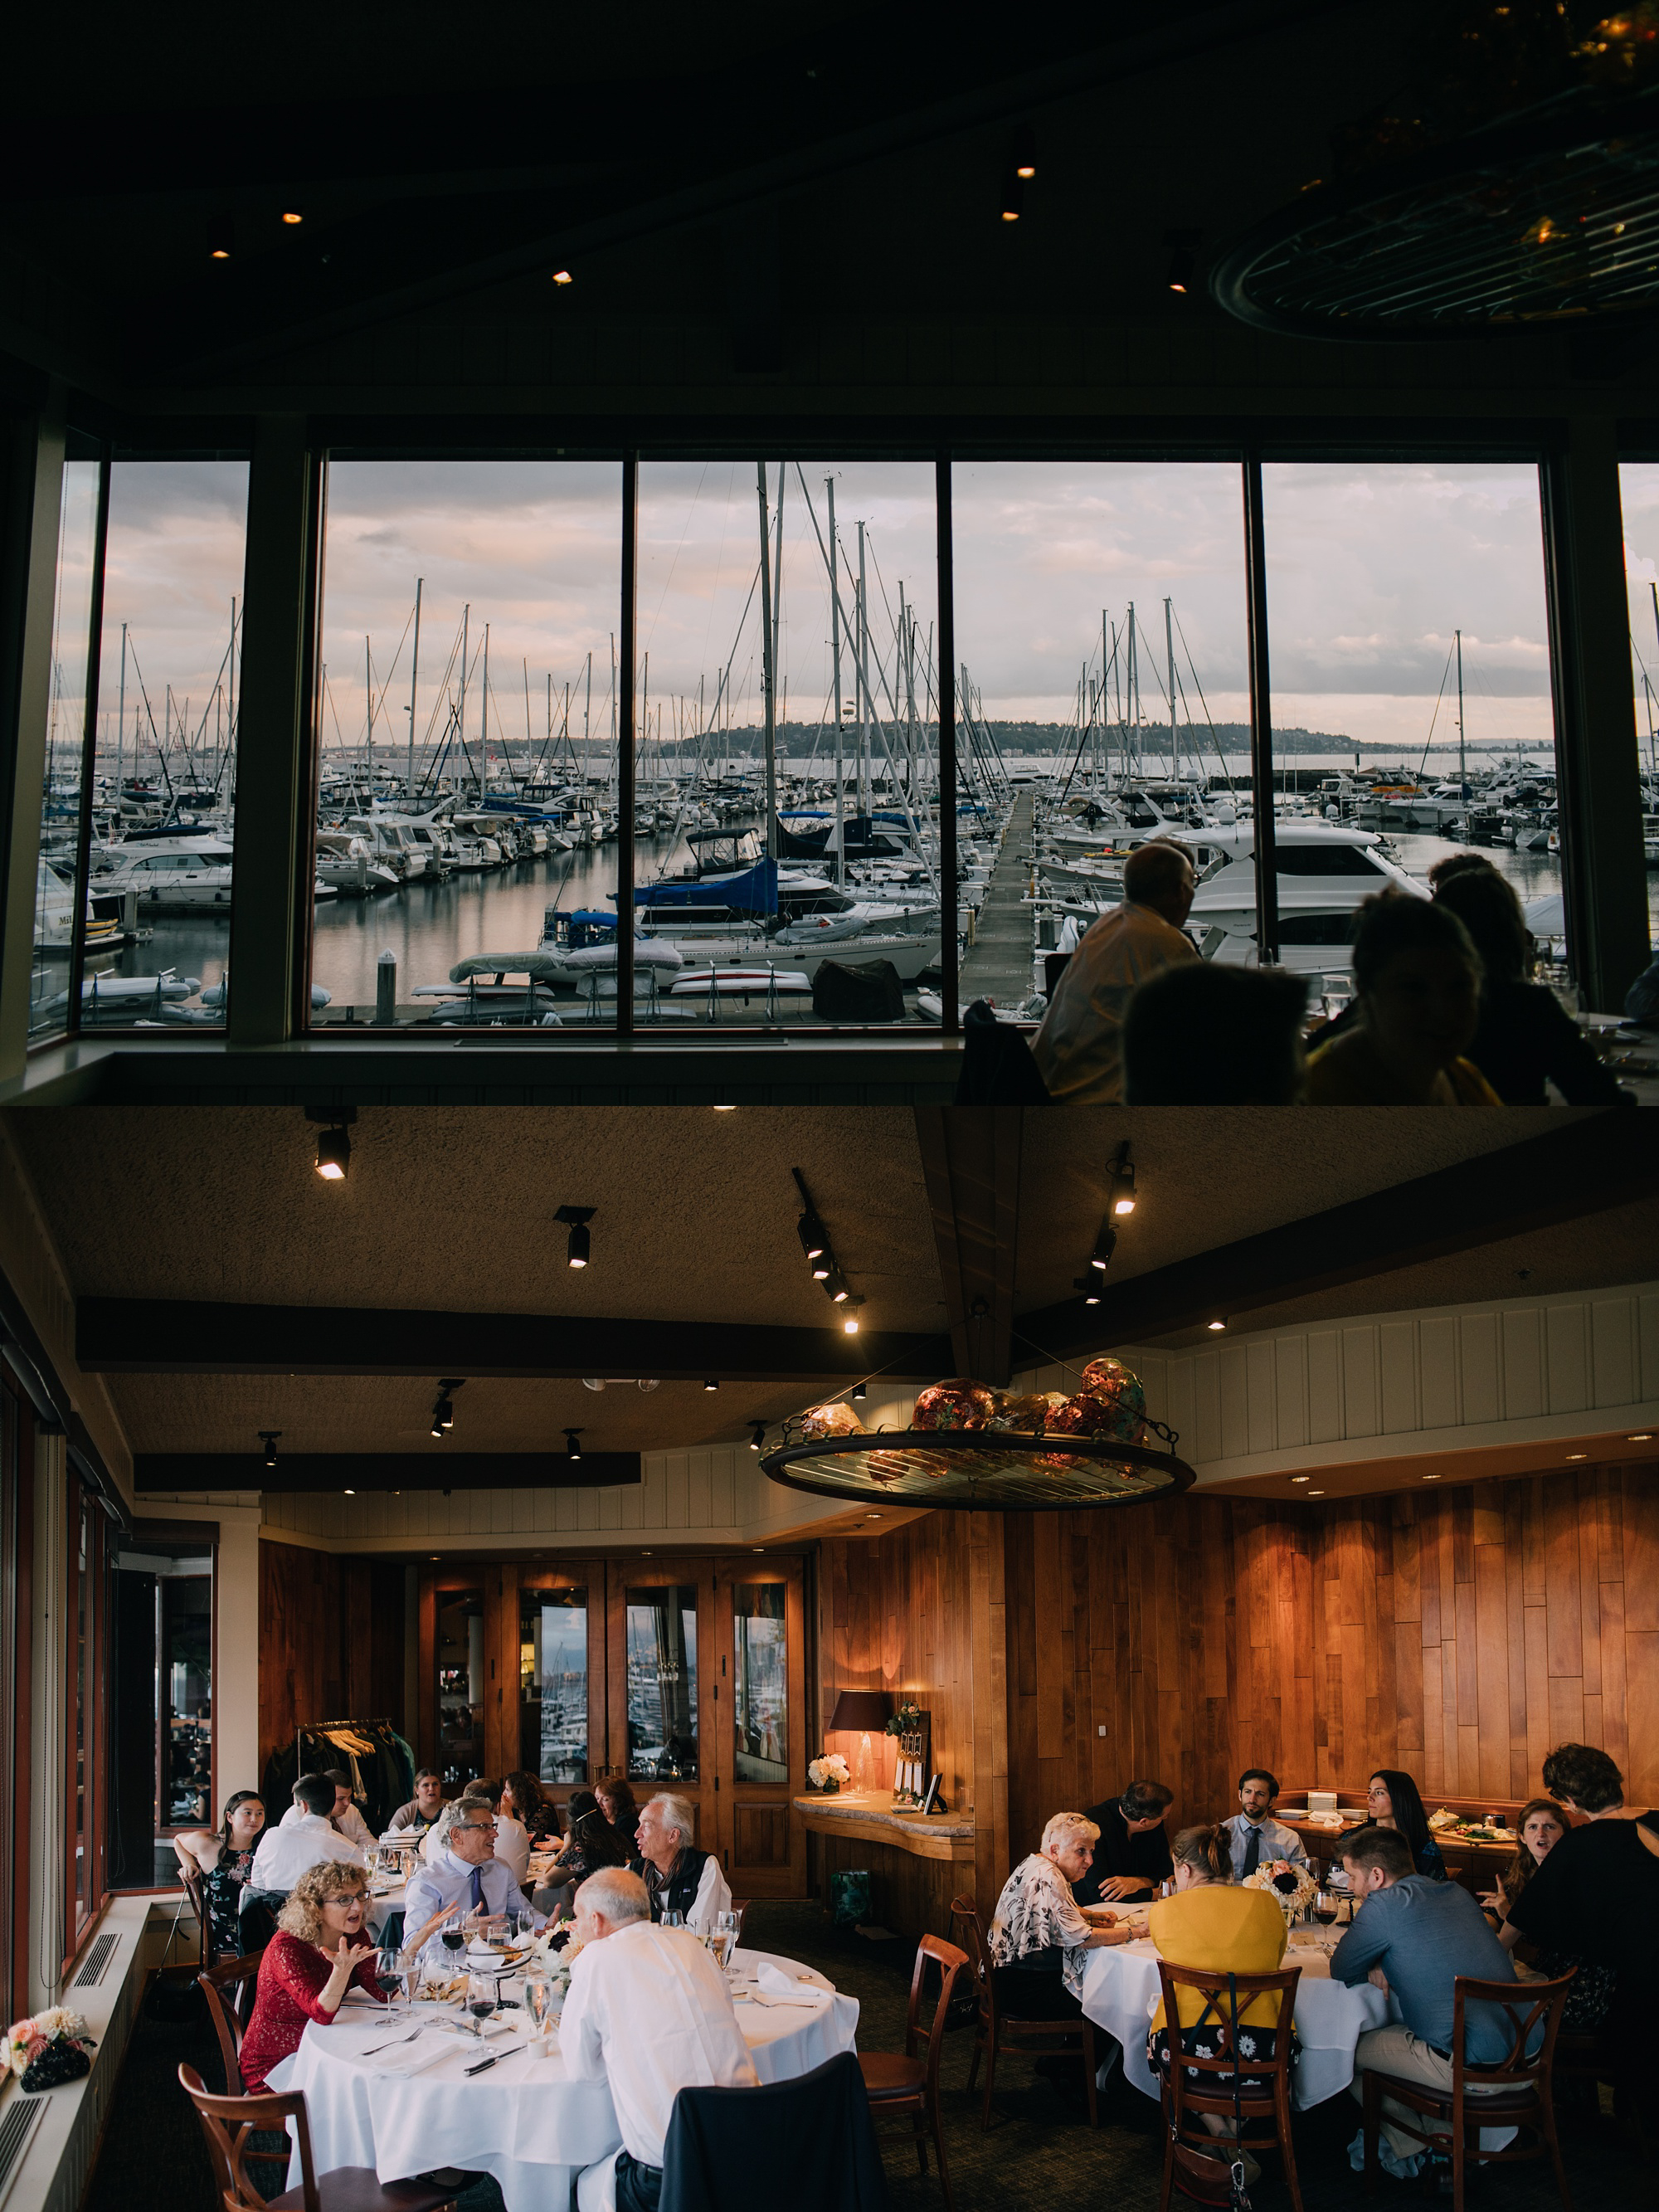 intimate small wedding photographer seattle washington pnw restaurant reception -11.jpg